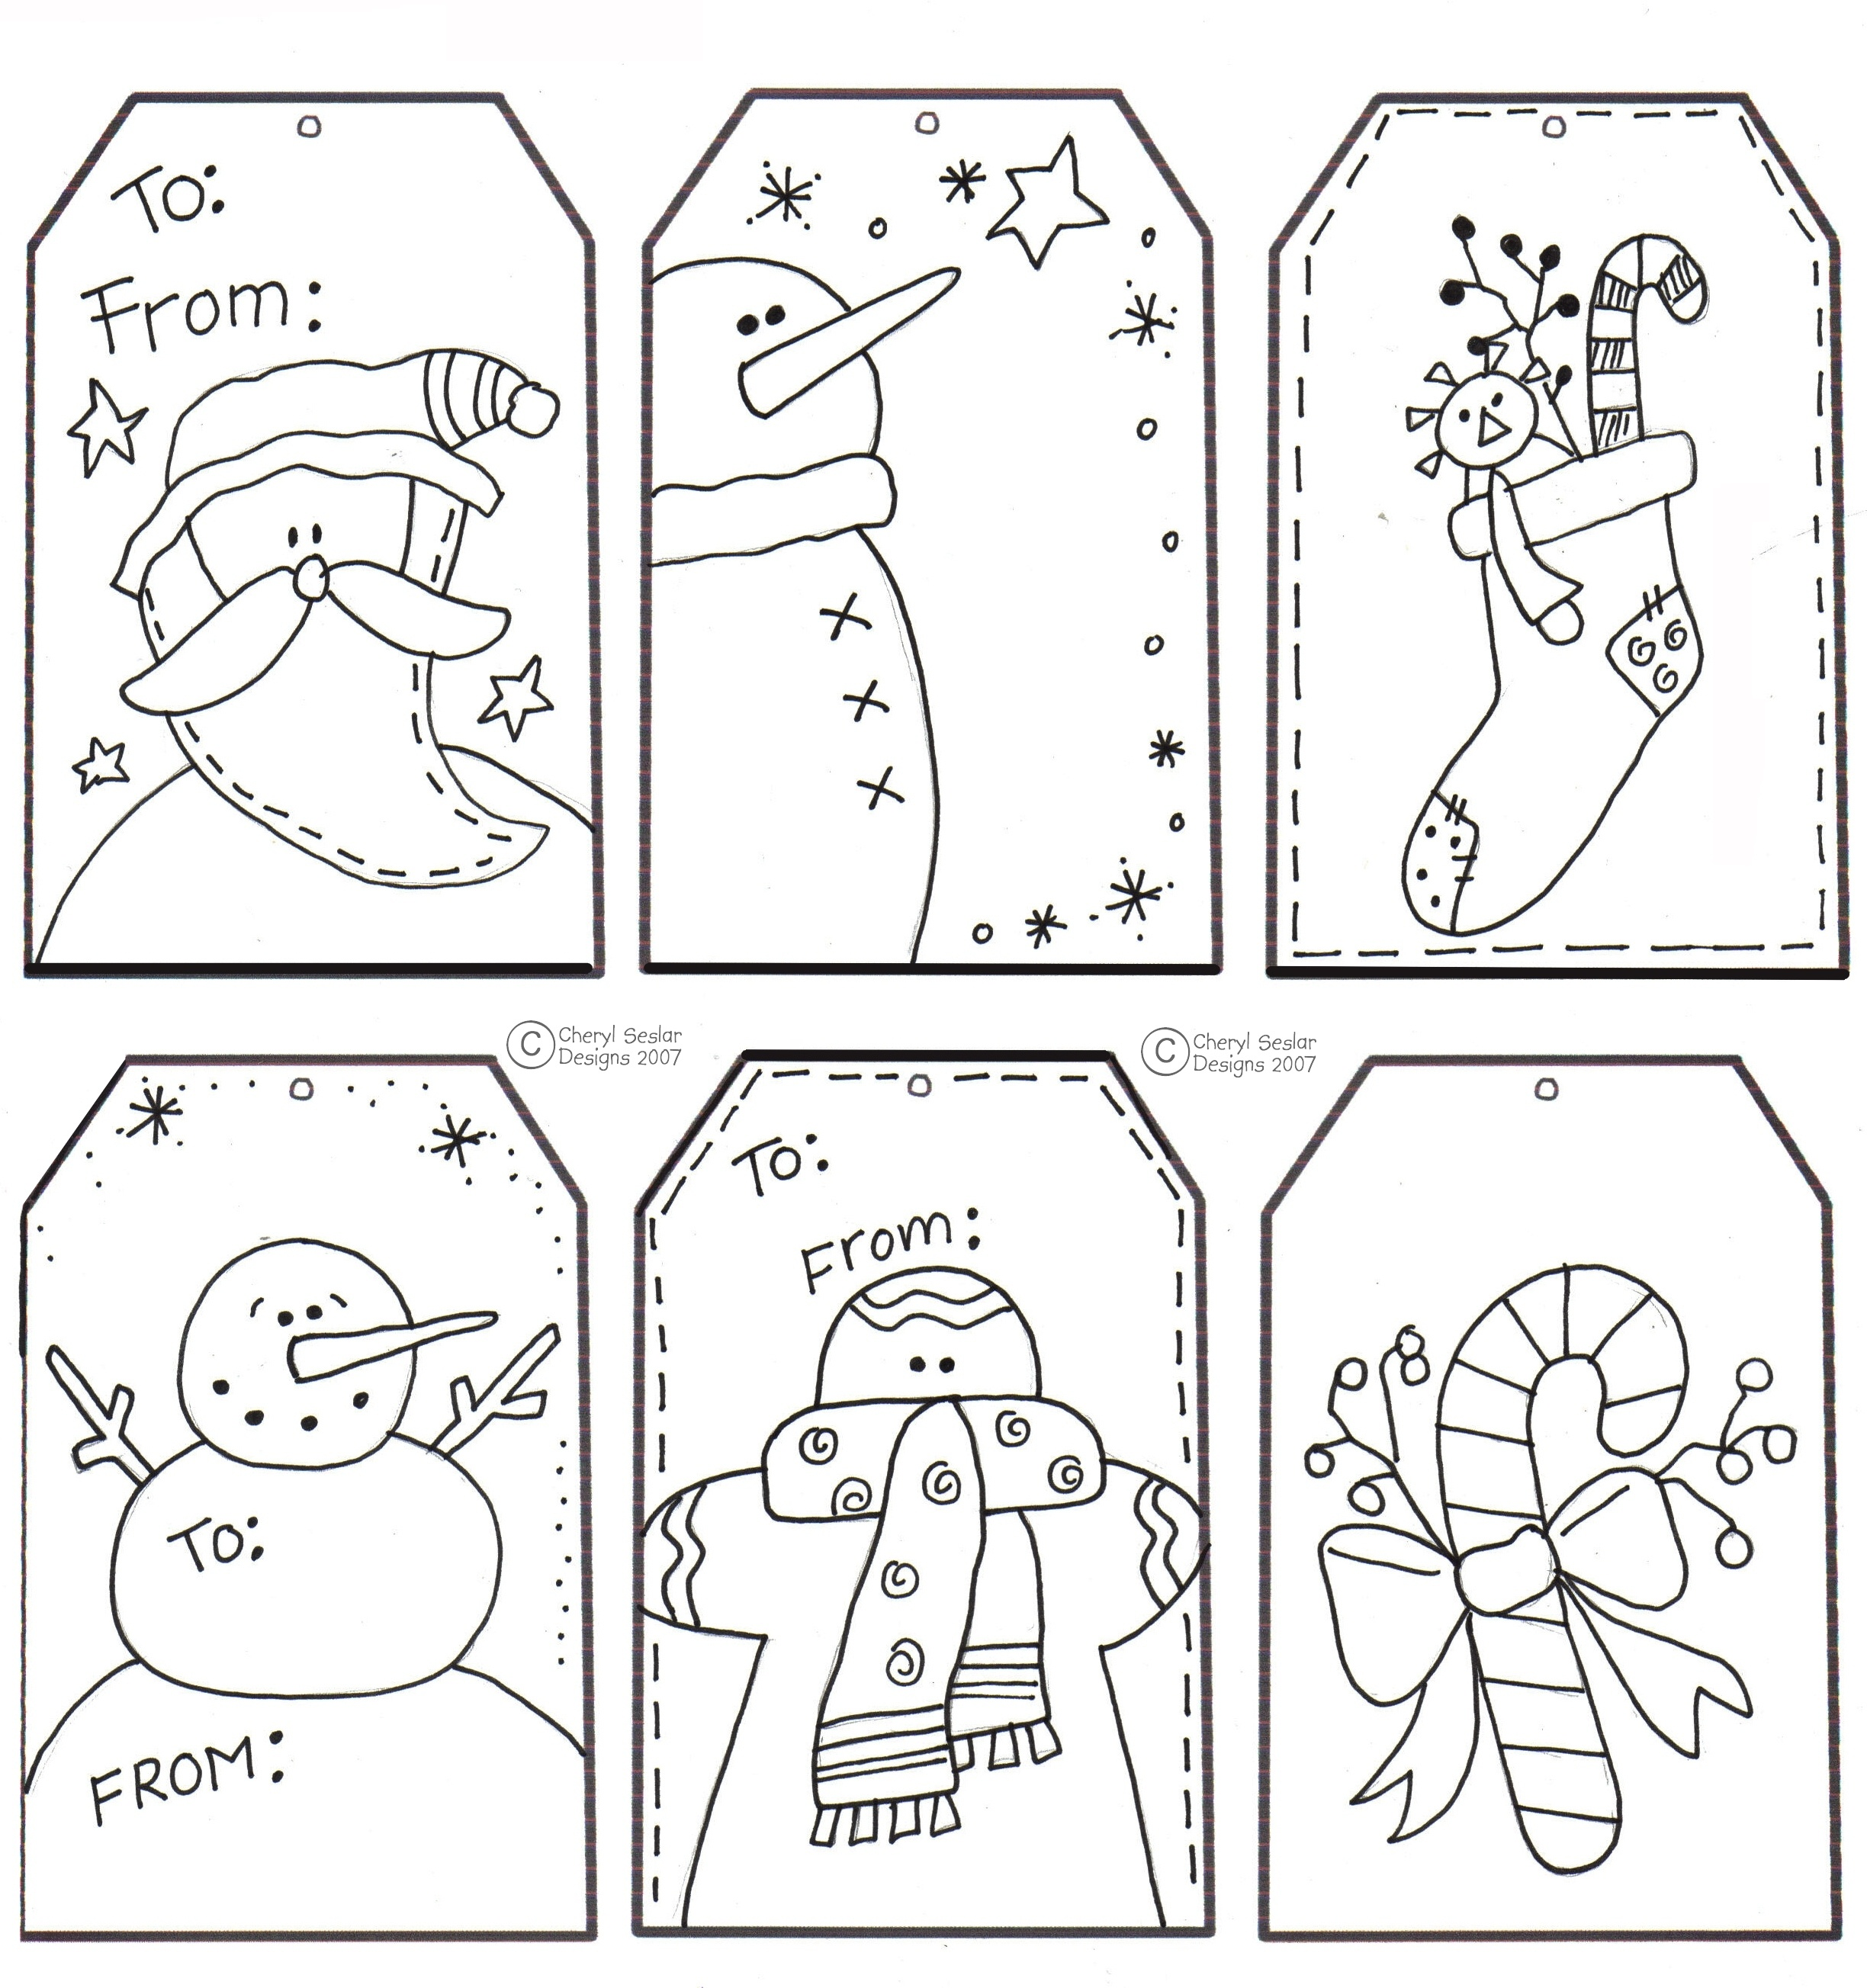 Free Christmas Craft Templates - Demir.iso-Consulting.co - Free Printable Christmas Craft Templates